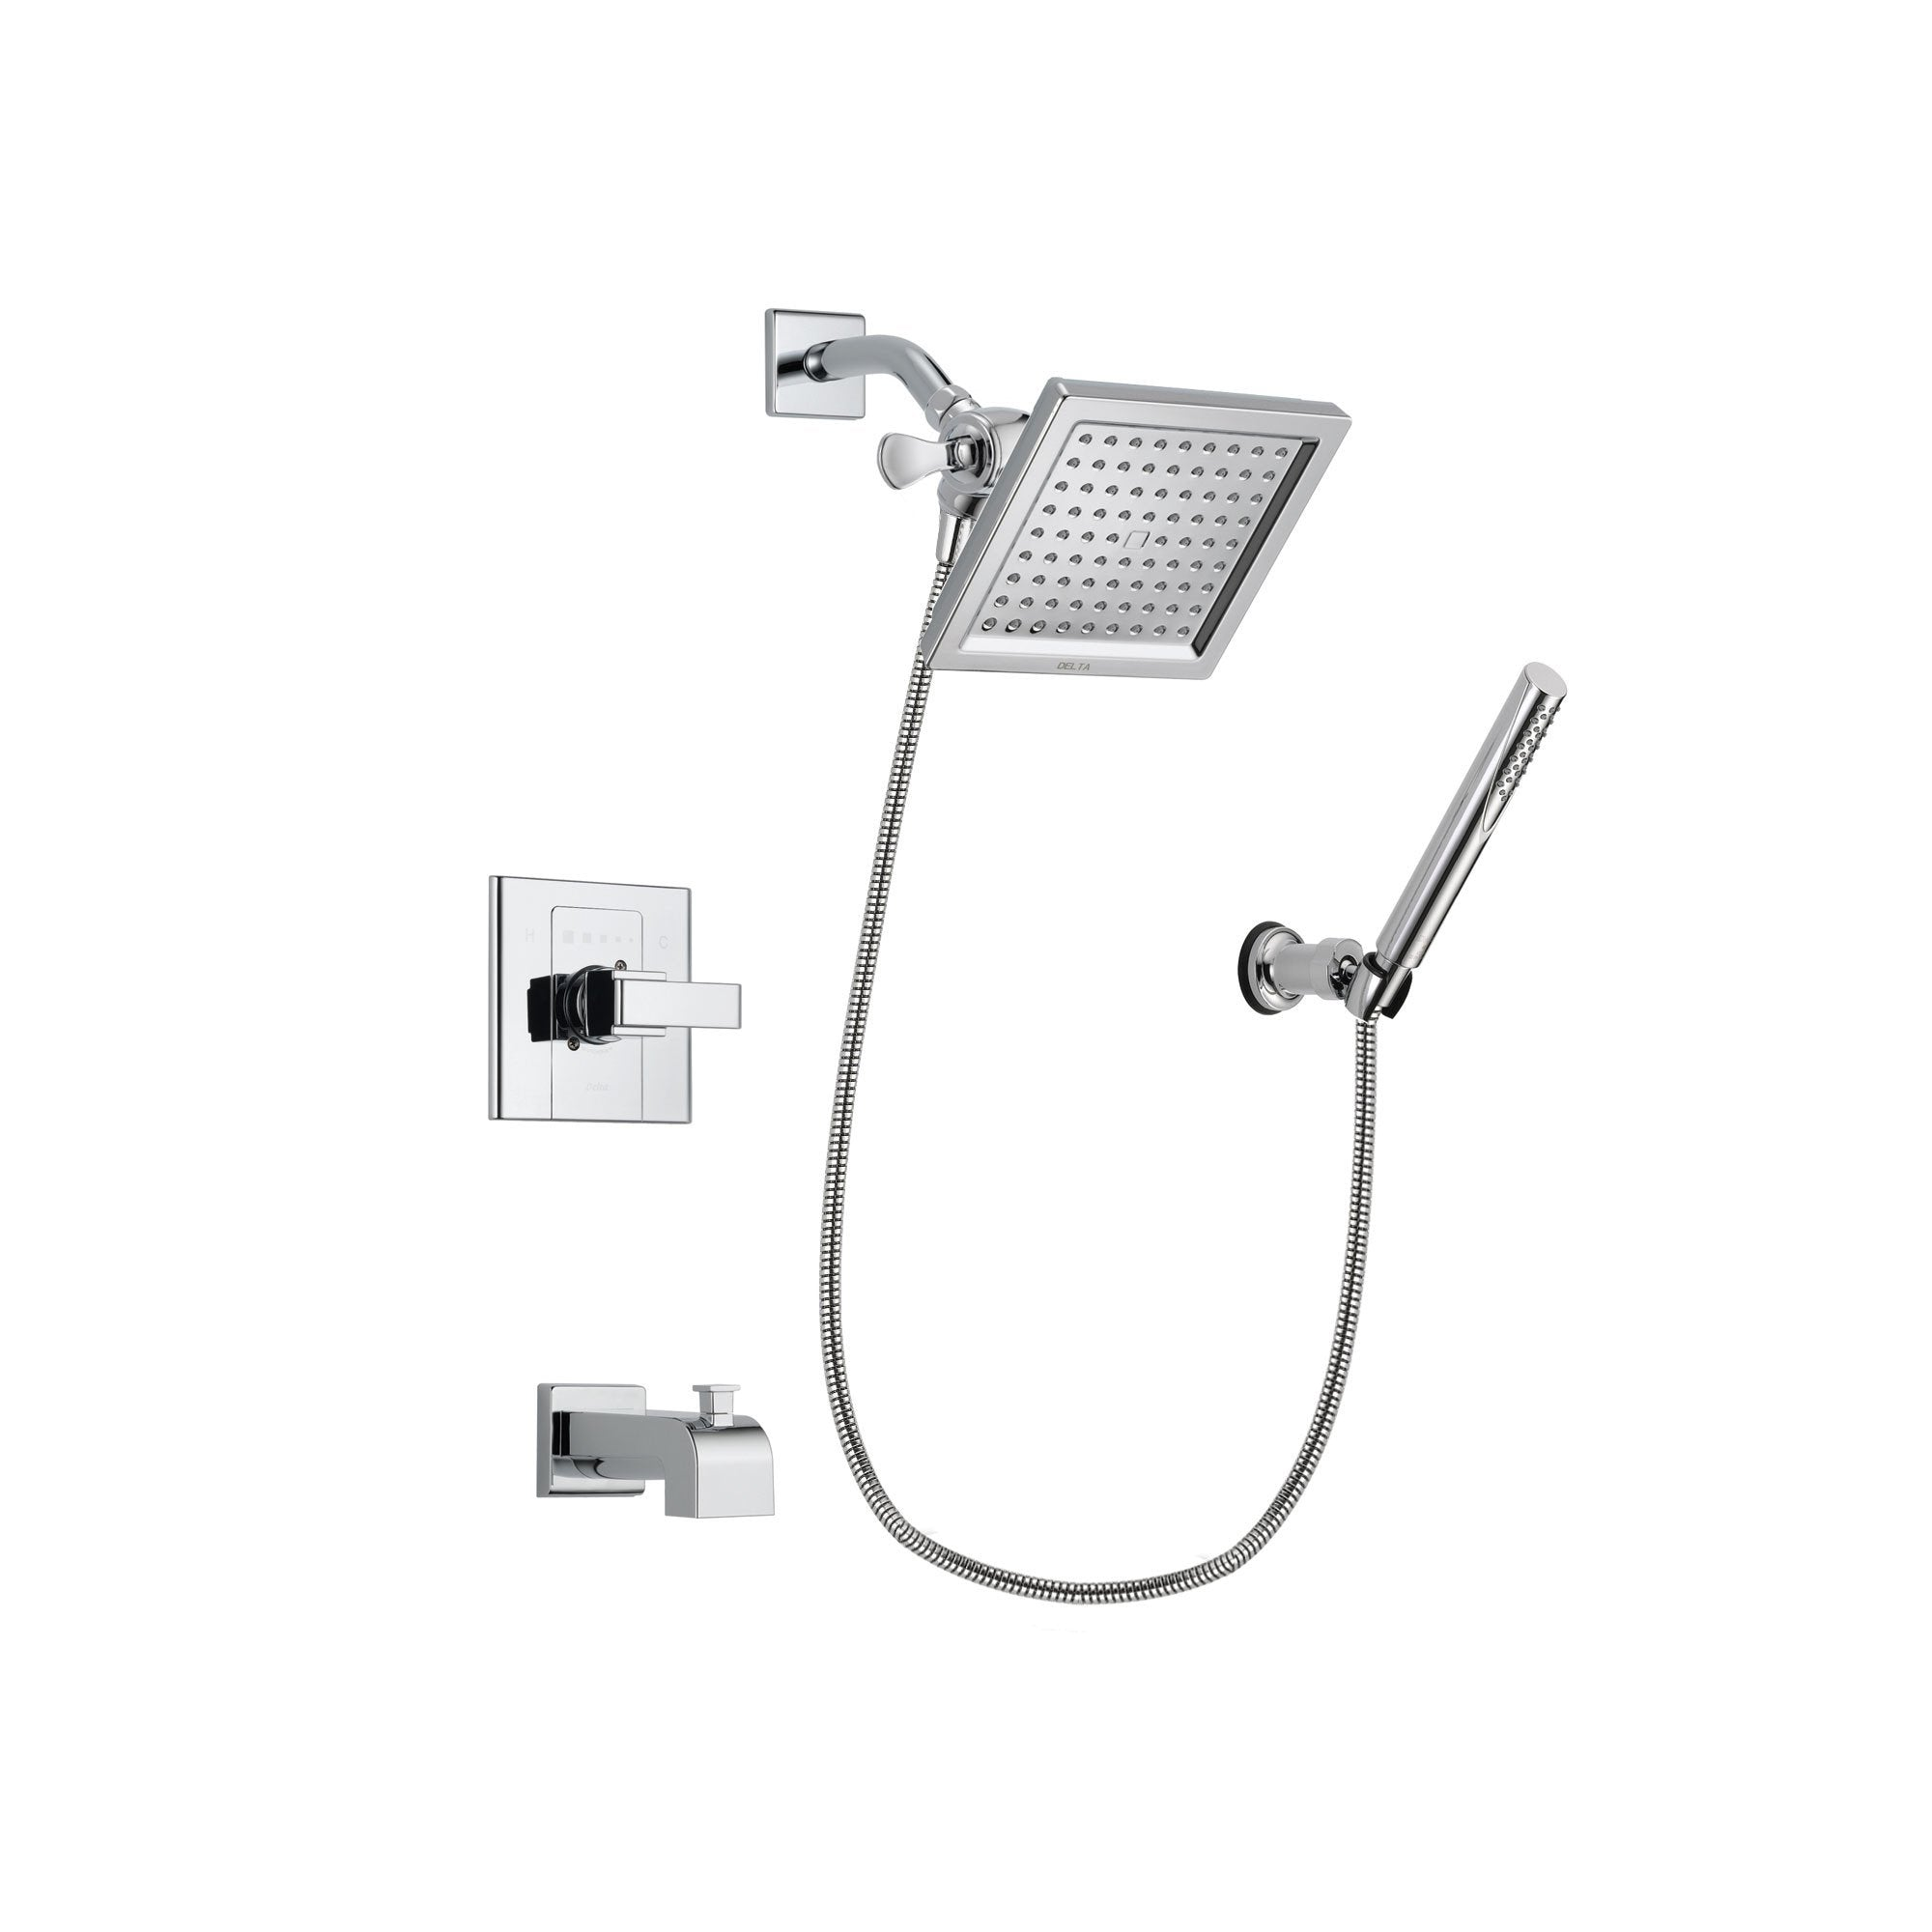 Delta Arzo Chrome Finish Tub and Shower Faucet System Package with 6.5-inch Square Rain Showerhead and Modern Handheld Shower Spray with Wall Bracket and Hose Includes Rough-in Valve and Tub Spout DSP0075V